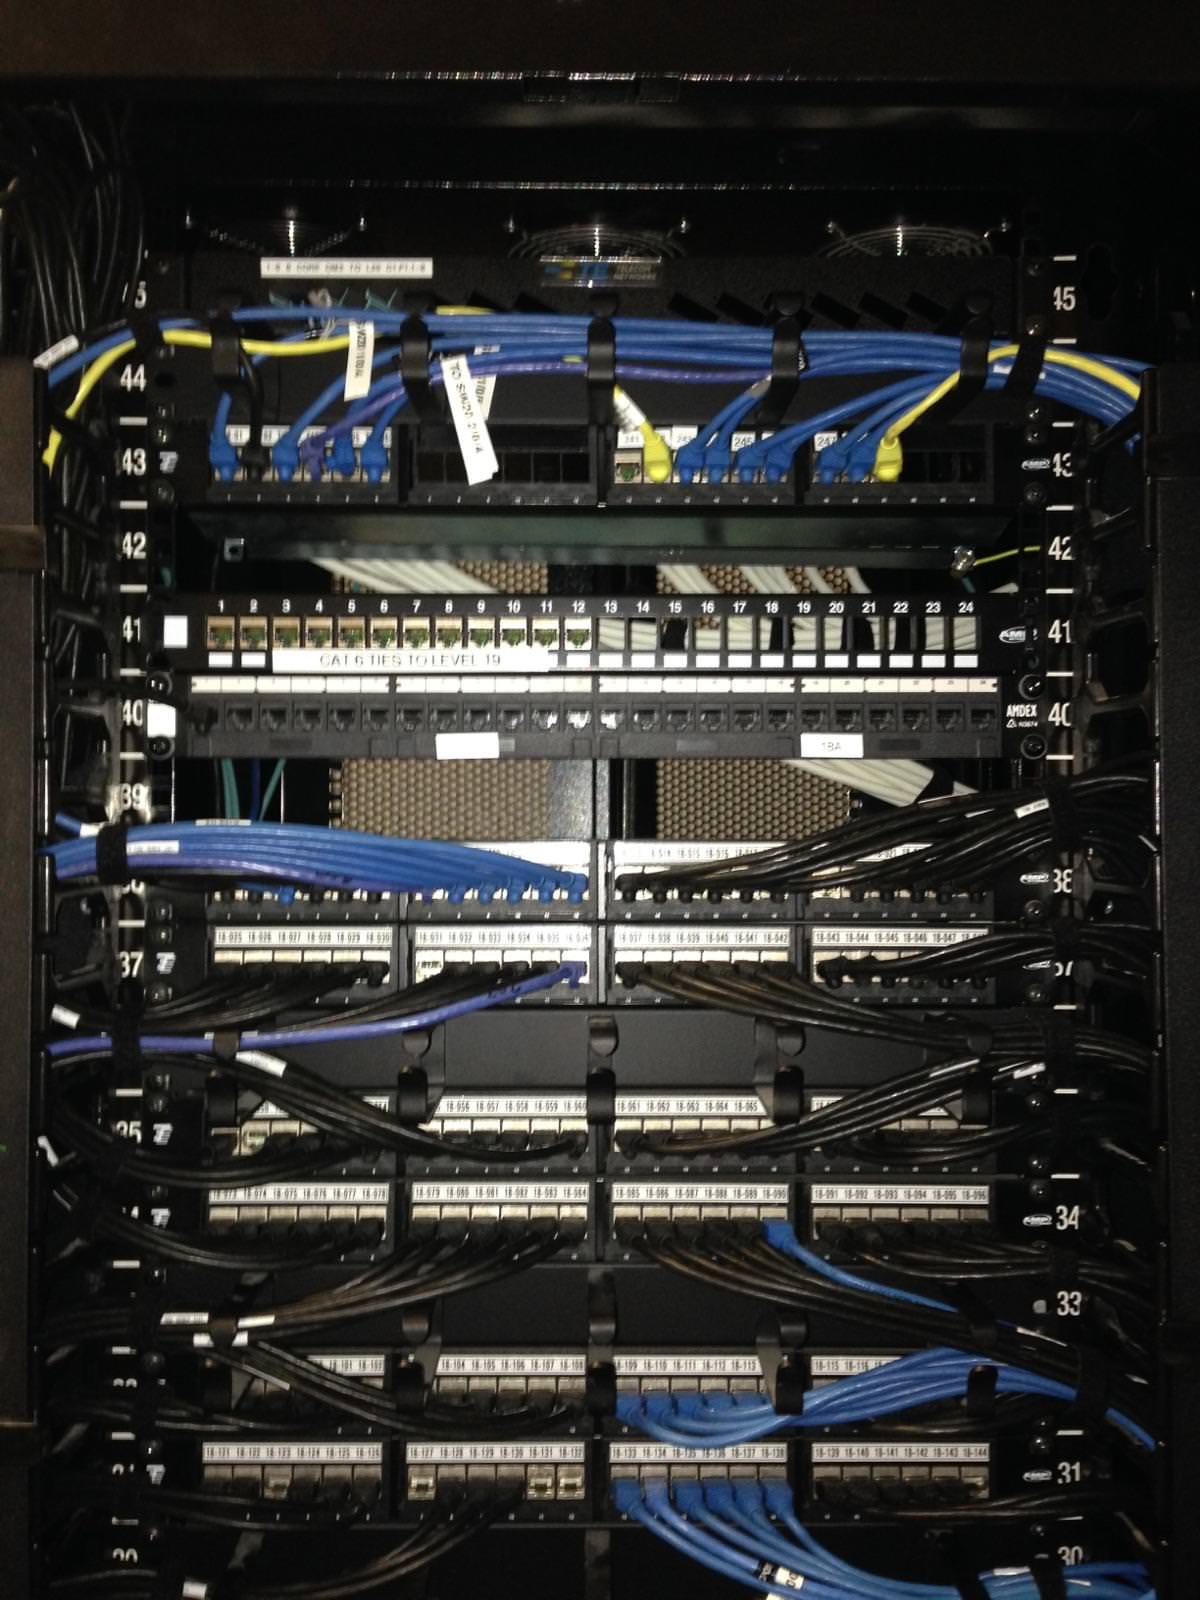 NETWORK/SYSTEM ENGINEERING SERVICES